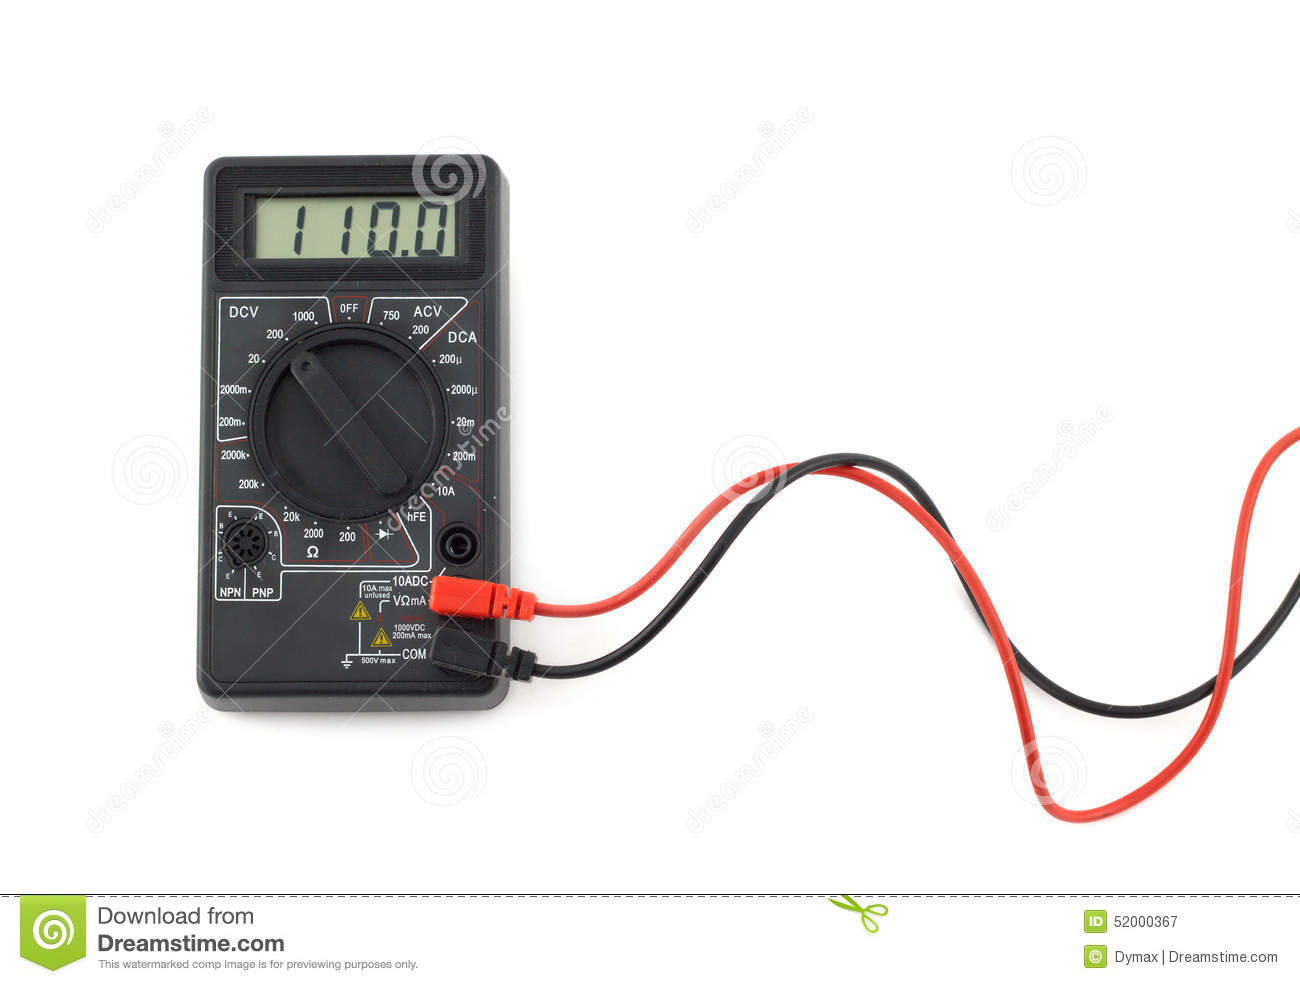 Digital multimeter with red and black wires shows 110 volts on LCD display